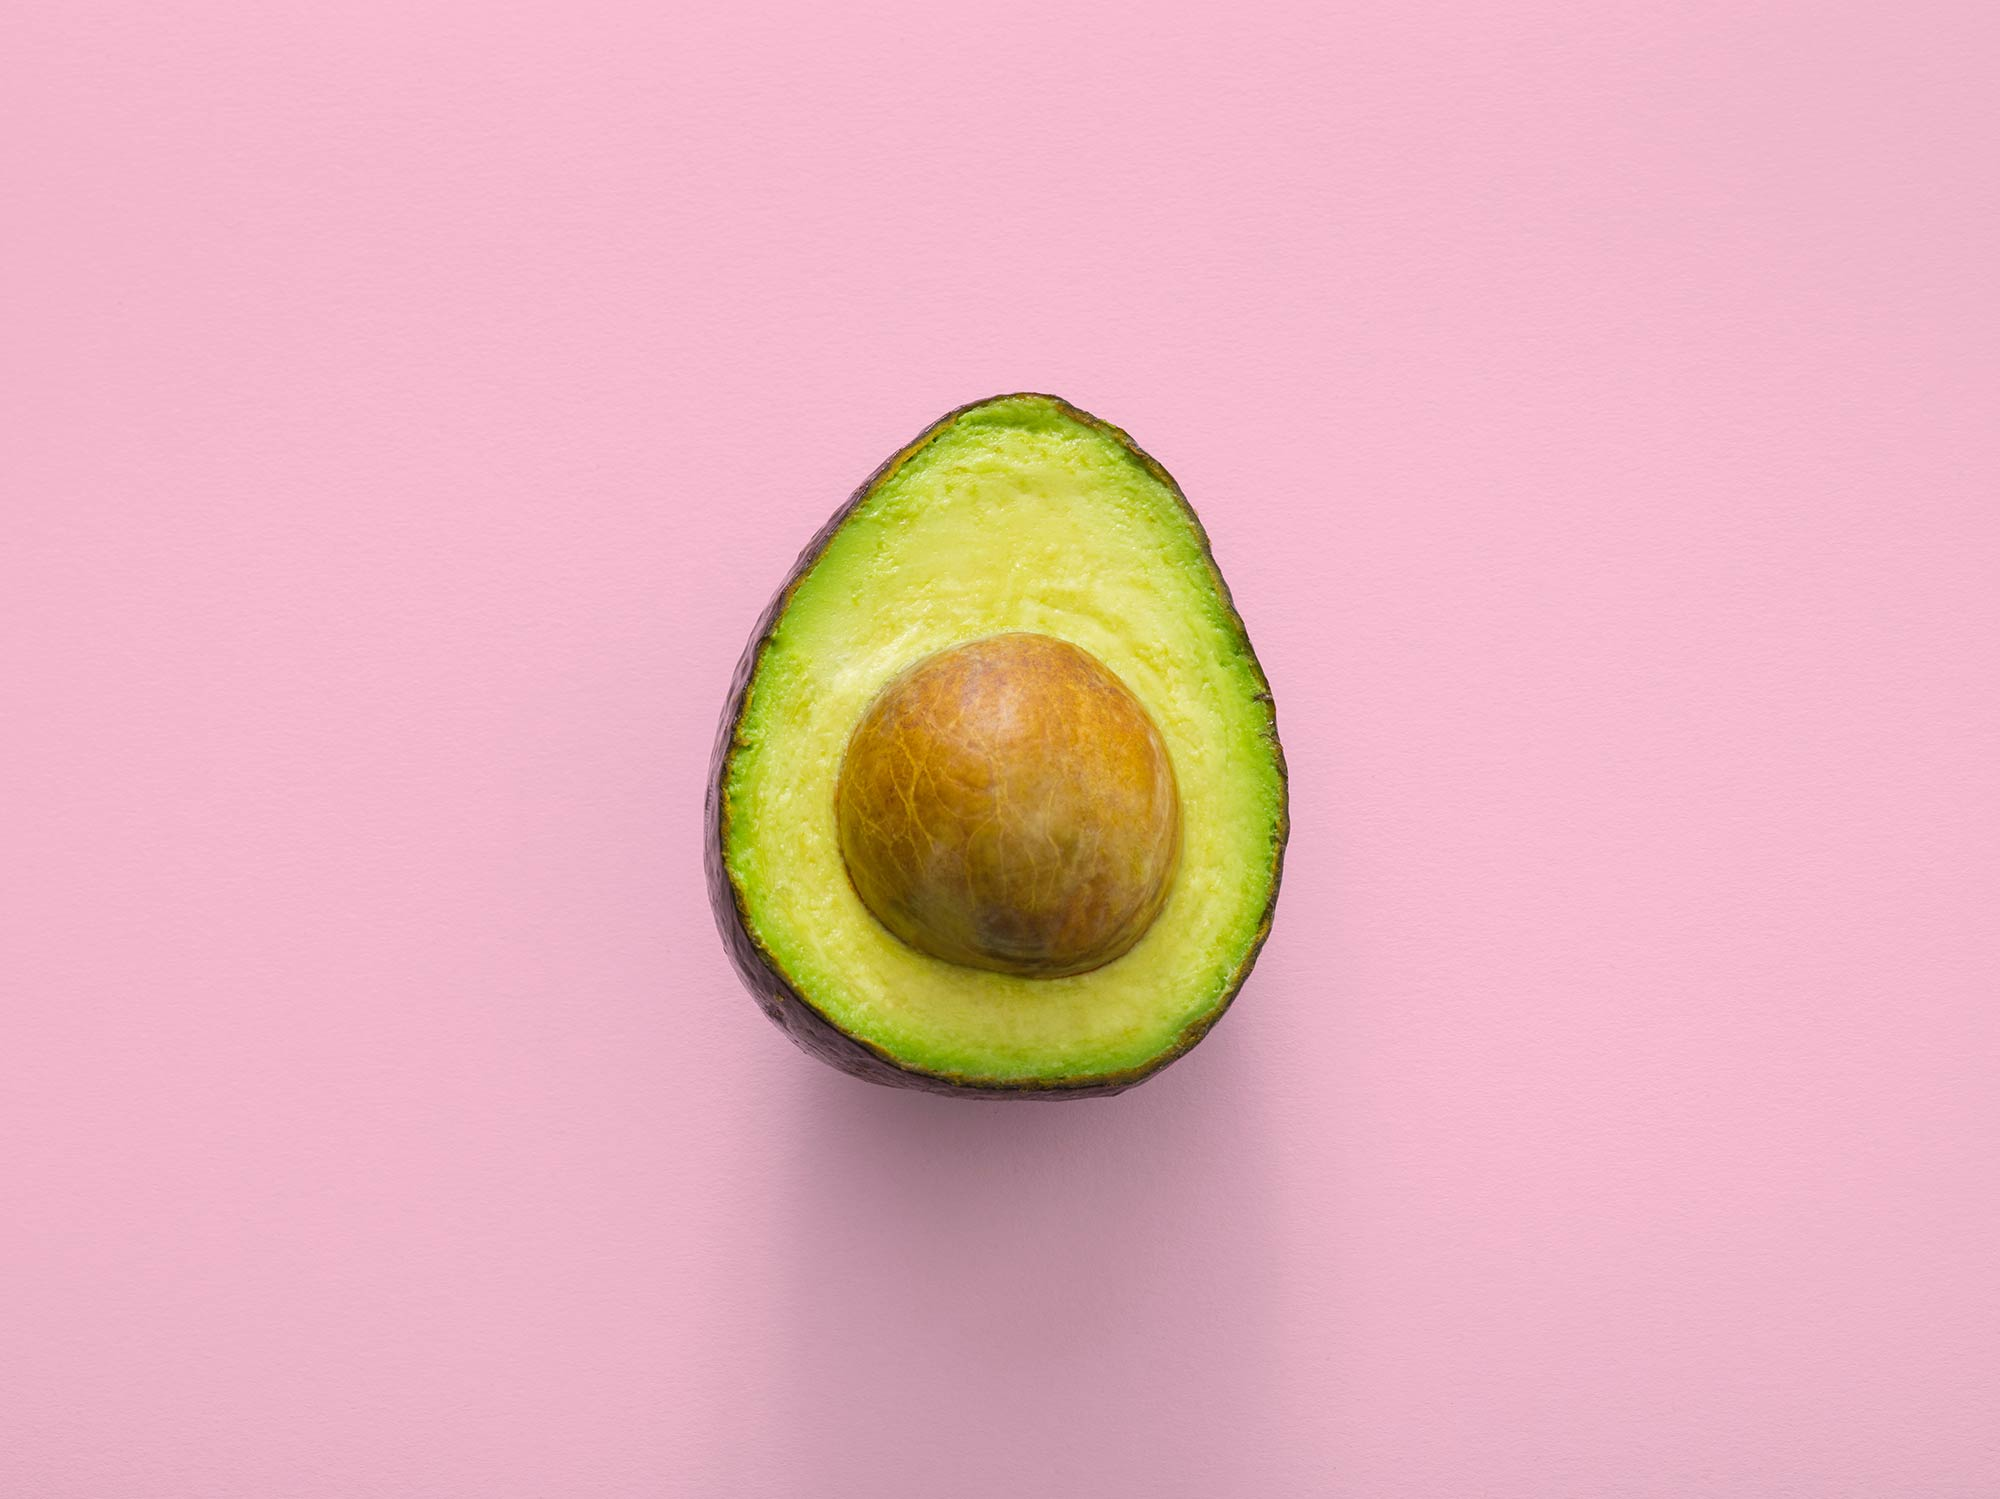 Avocado interior on a pink background